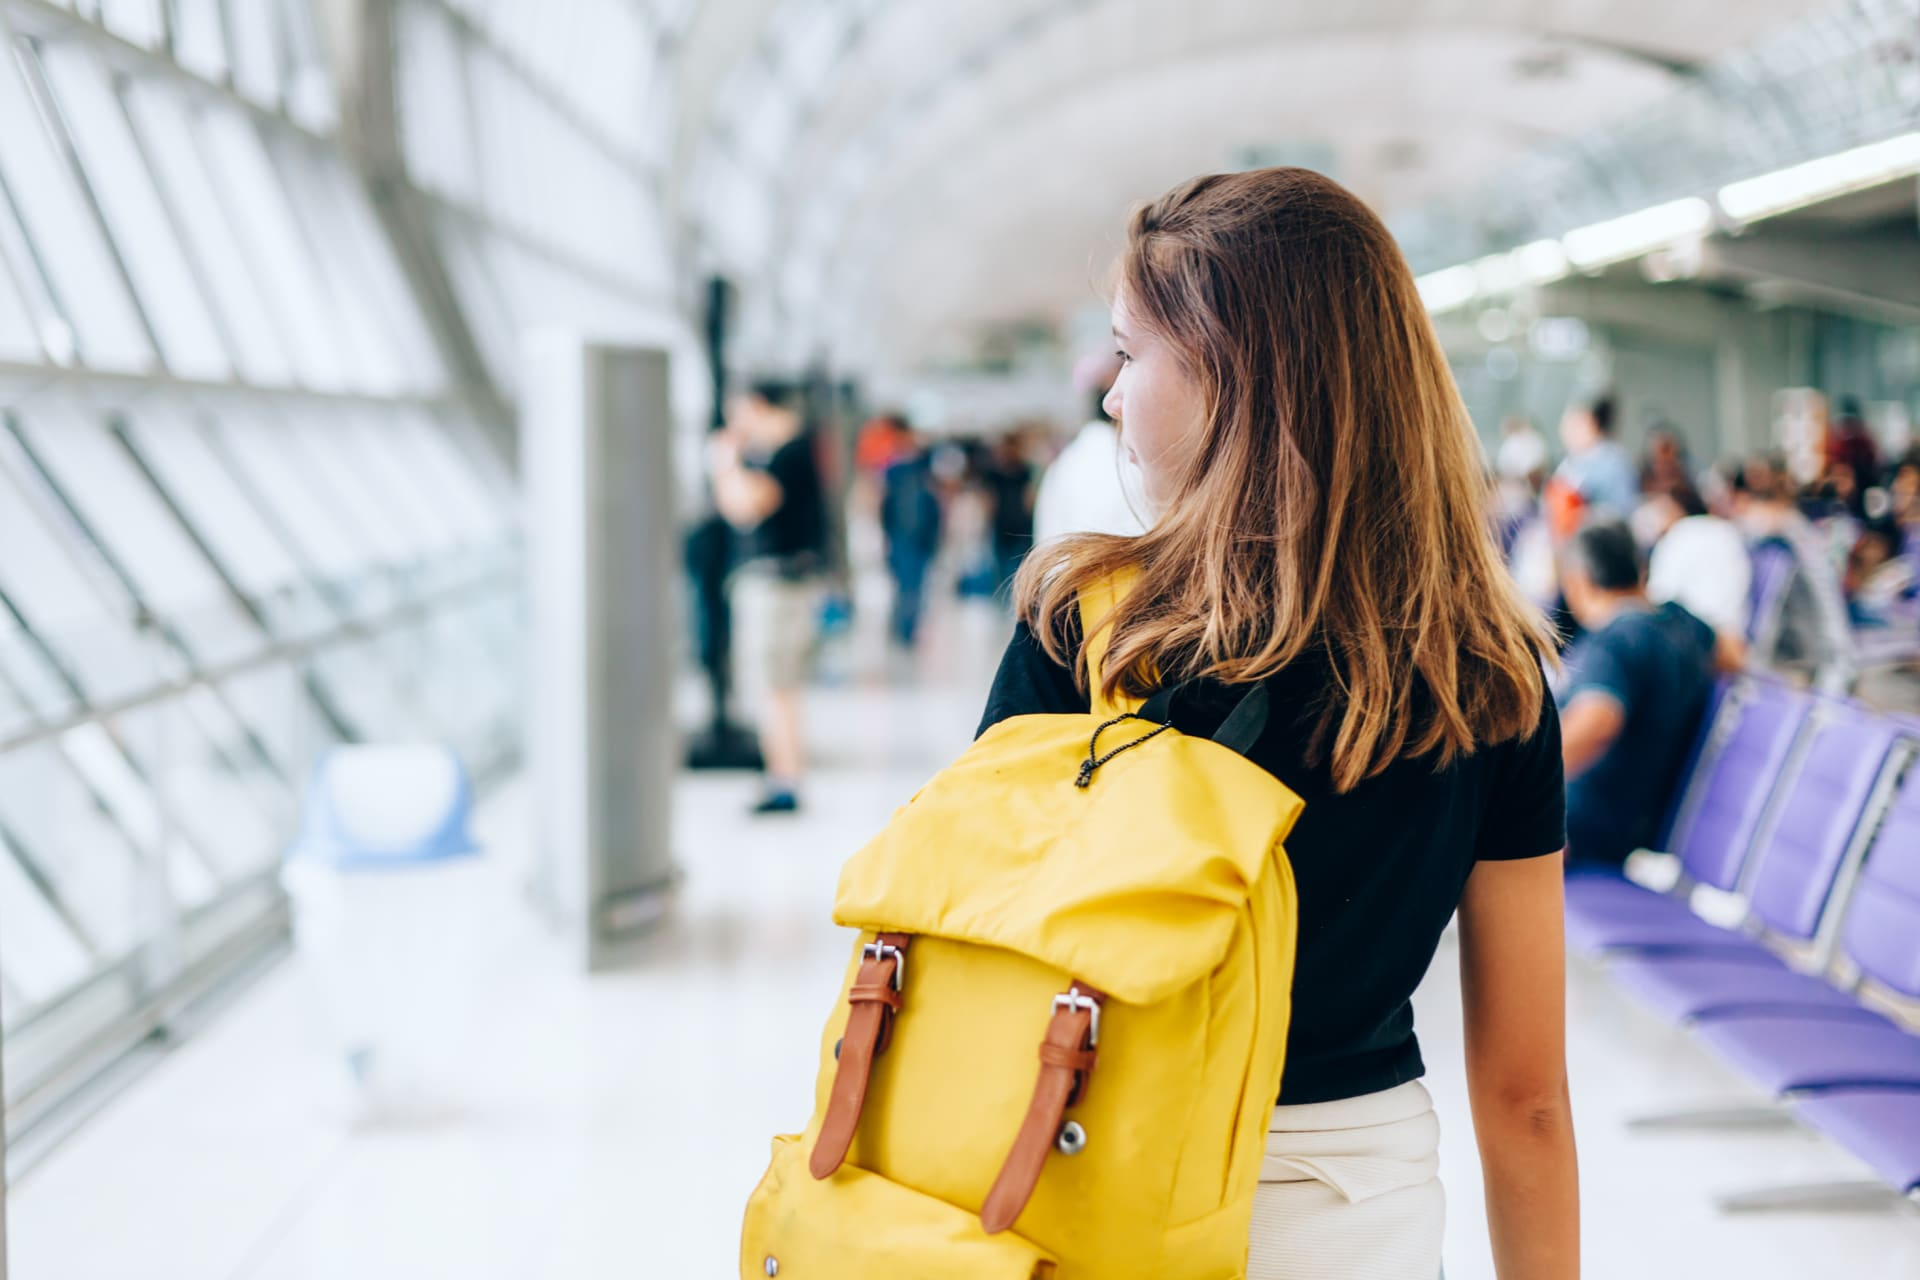 Rear photo of a girl wearing yellow backpack